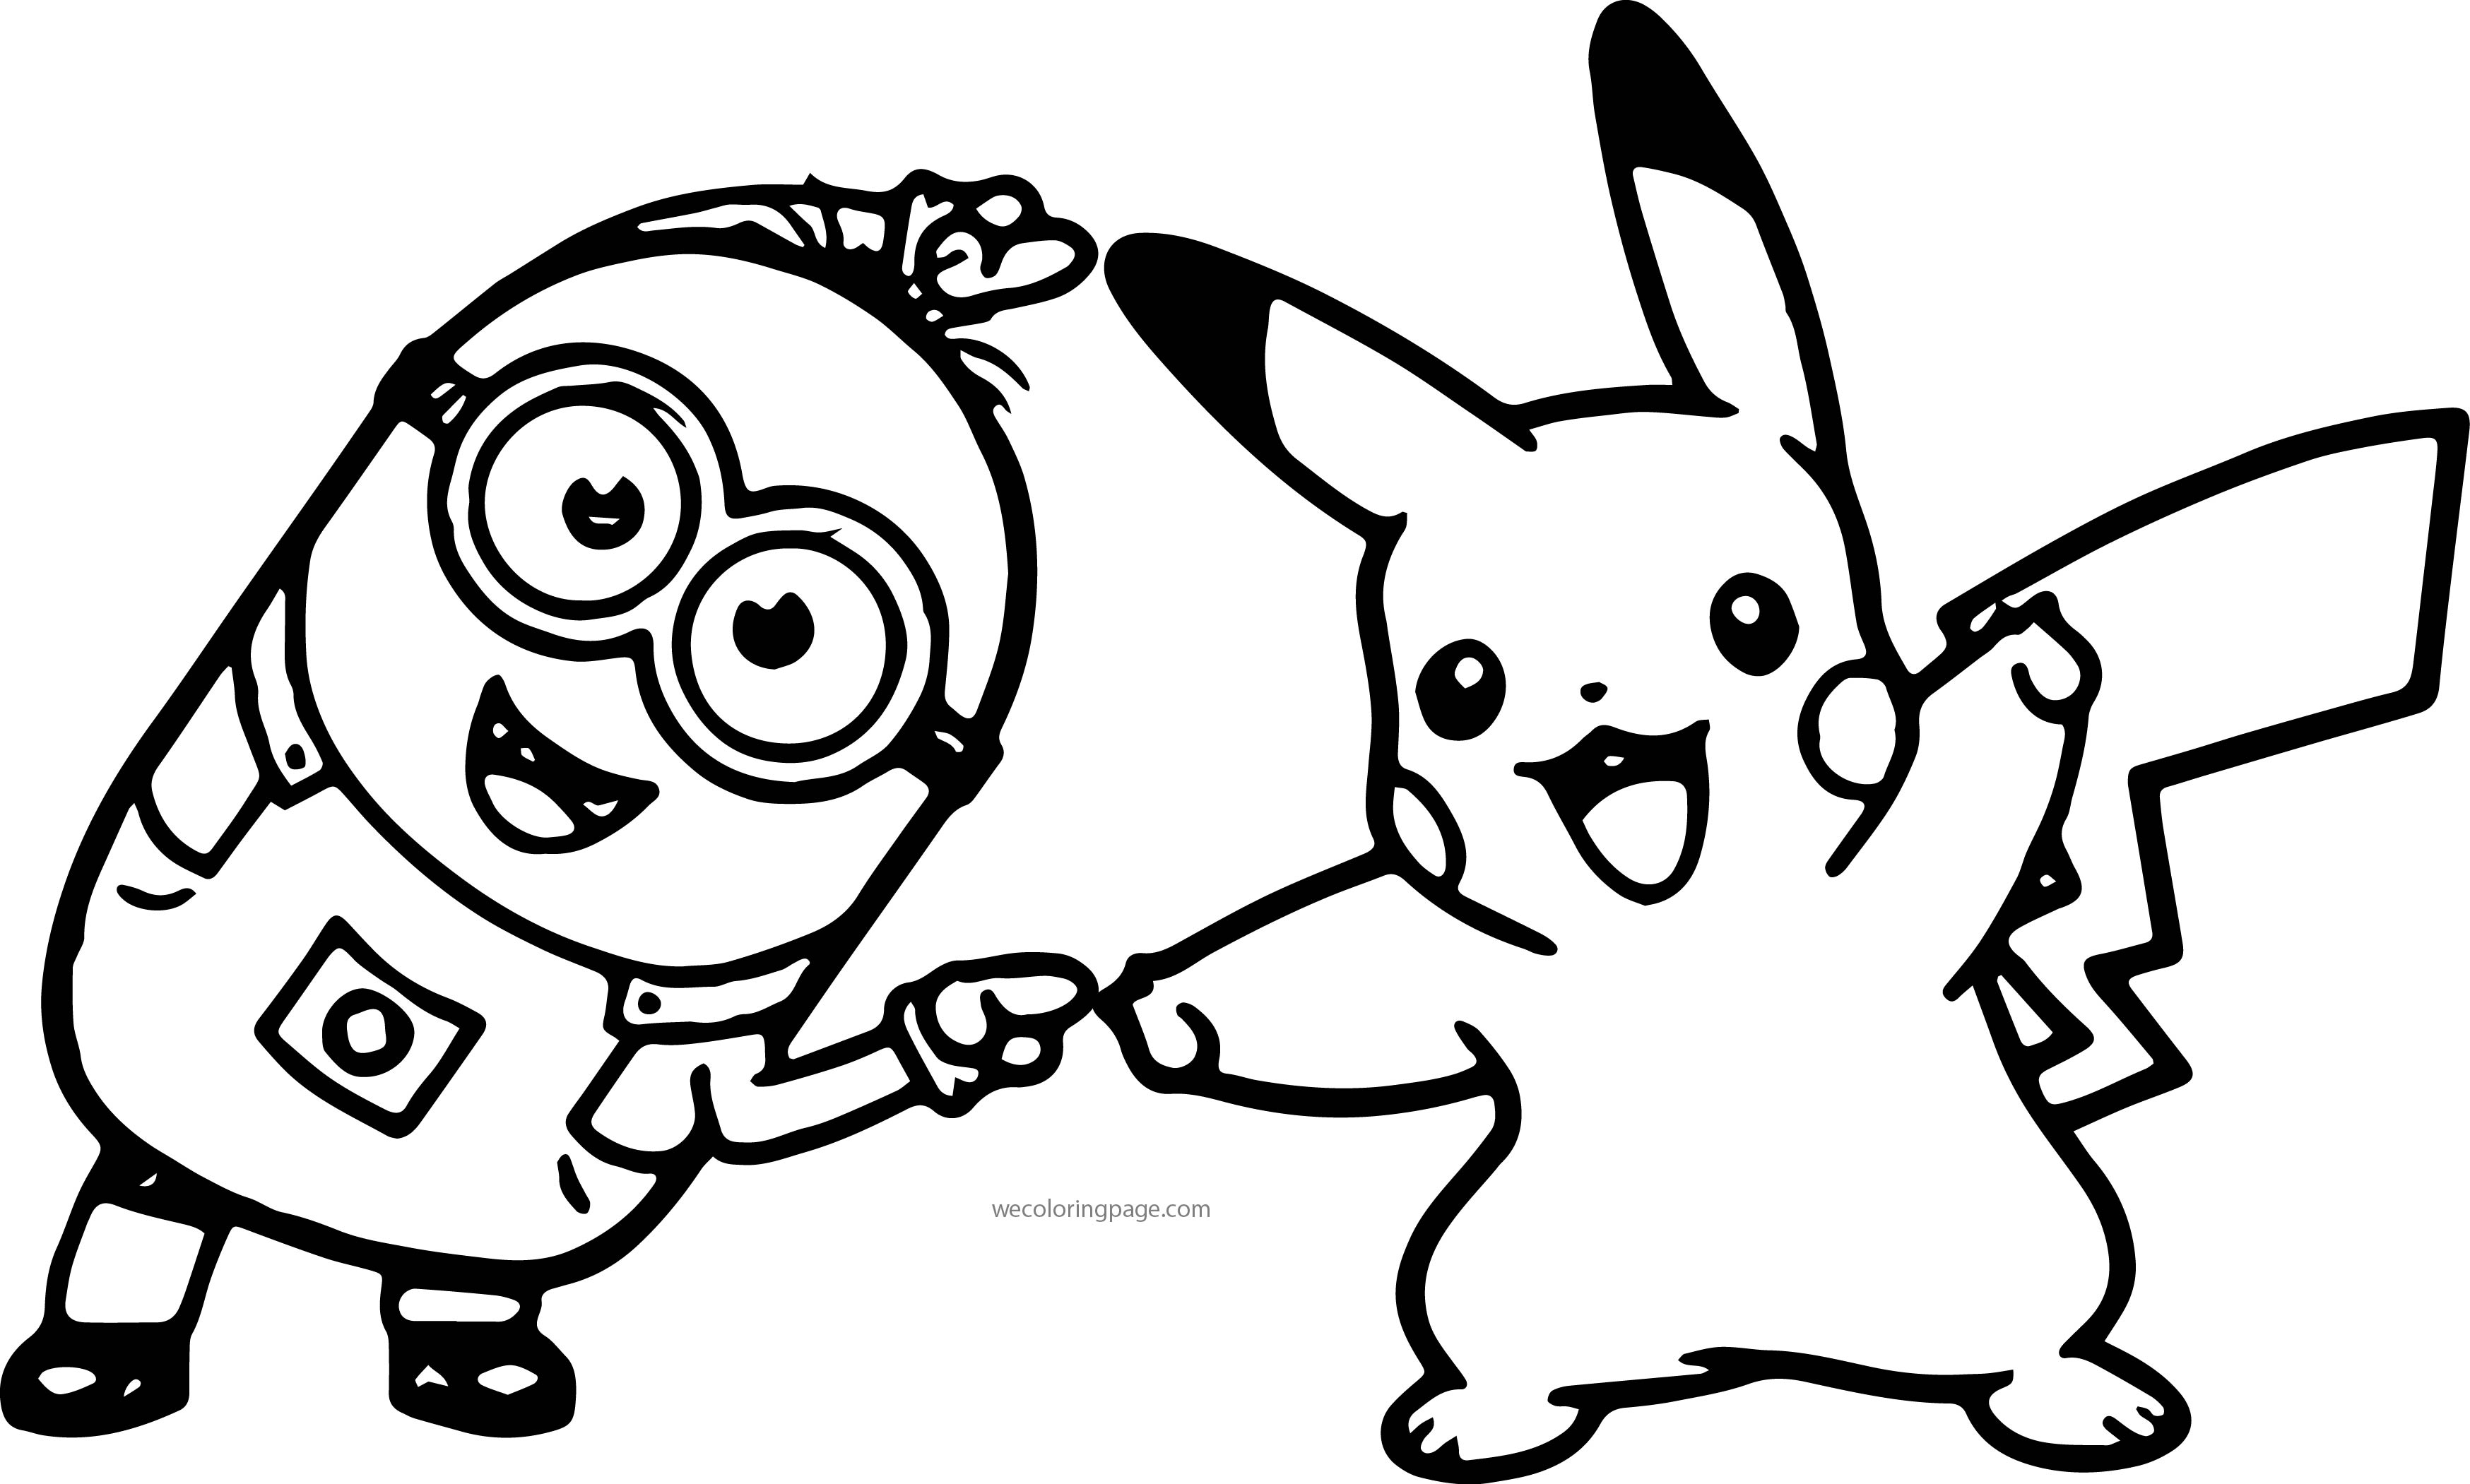 Free Printable Pokemon Coloring Pages Minion Pikachu Dance Pokemon Coloring Page Wecoloringpage